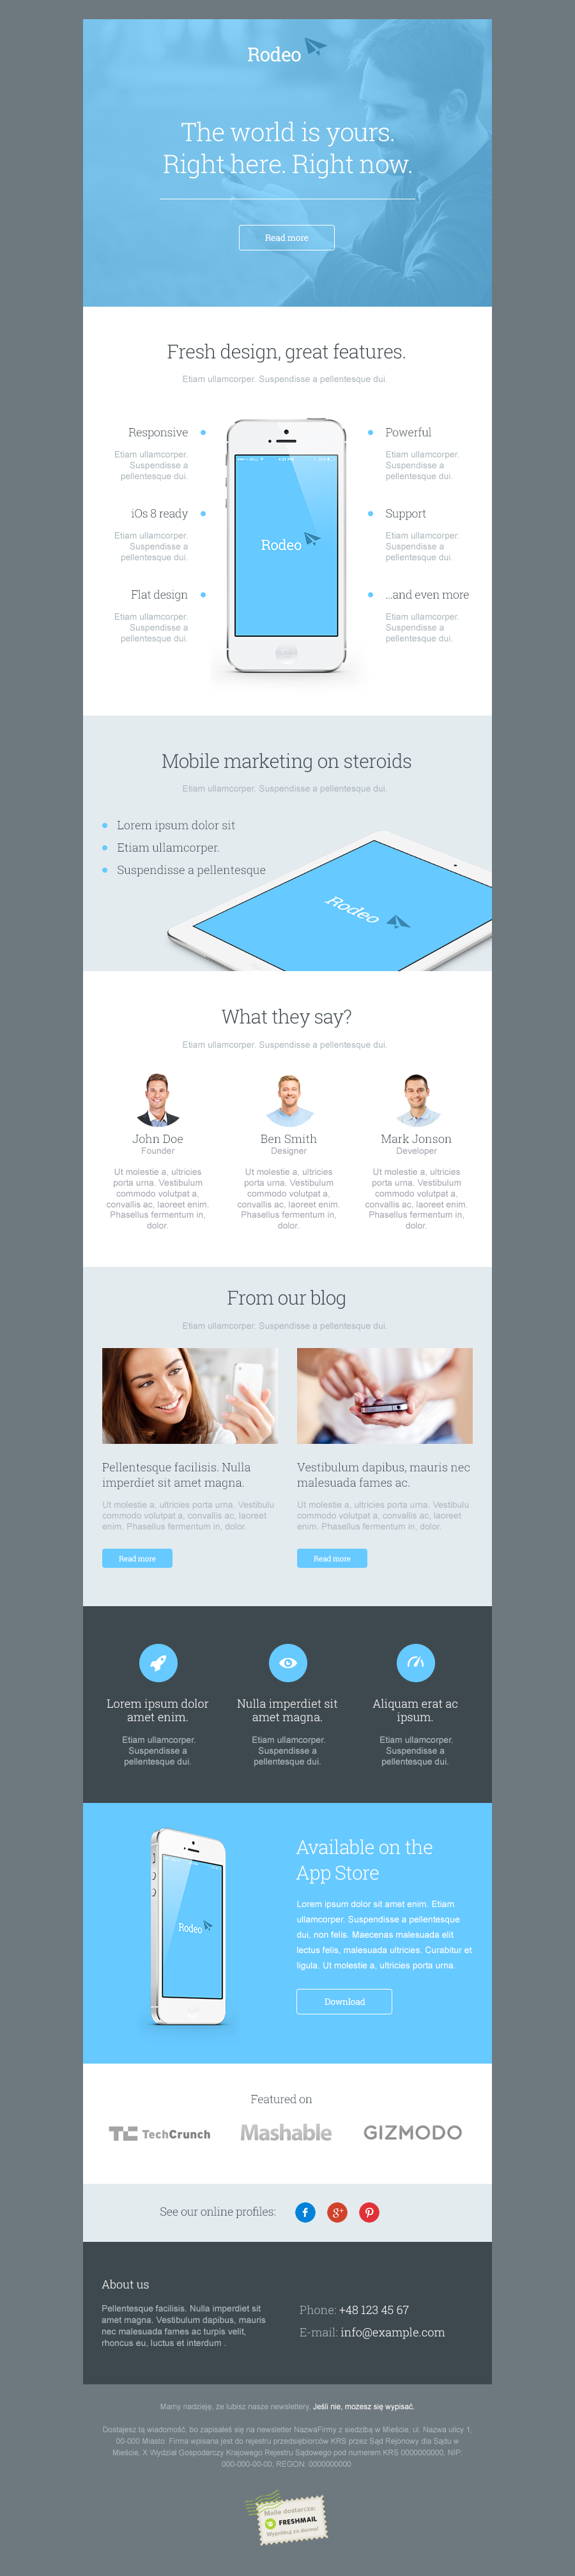 Rodeo Newsletter Template